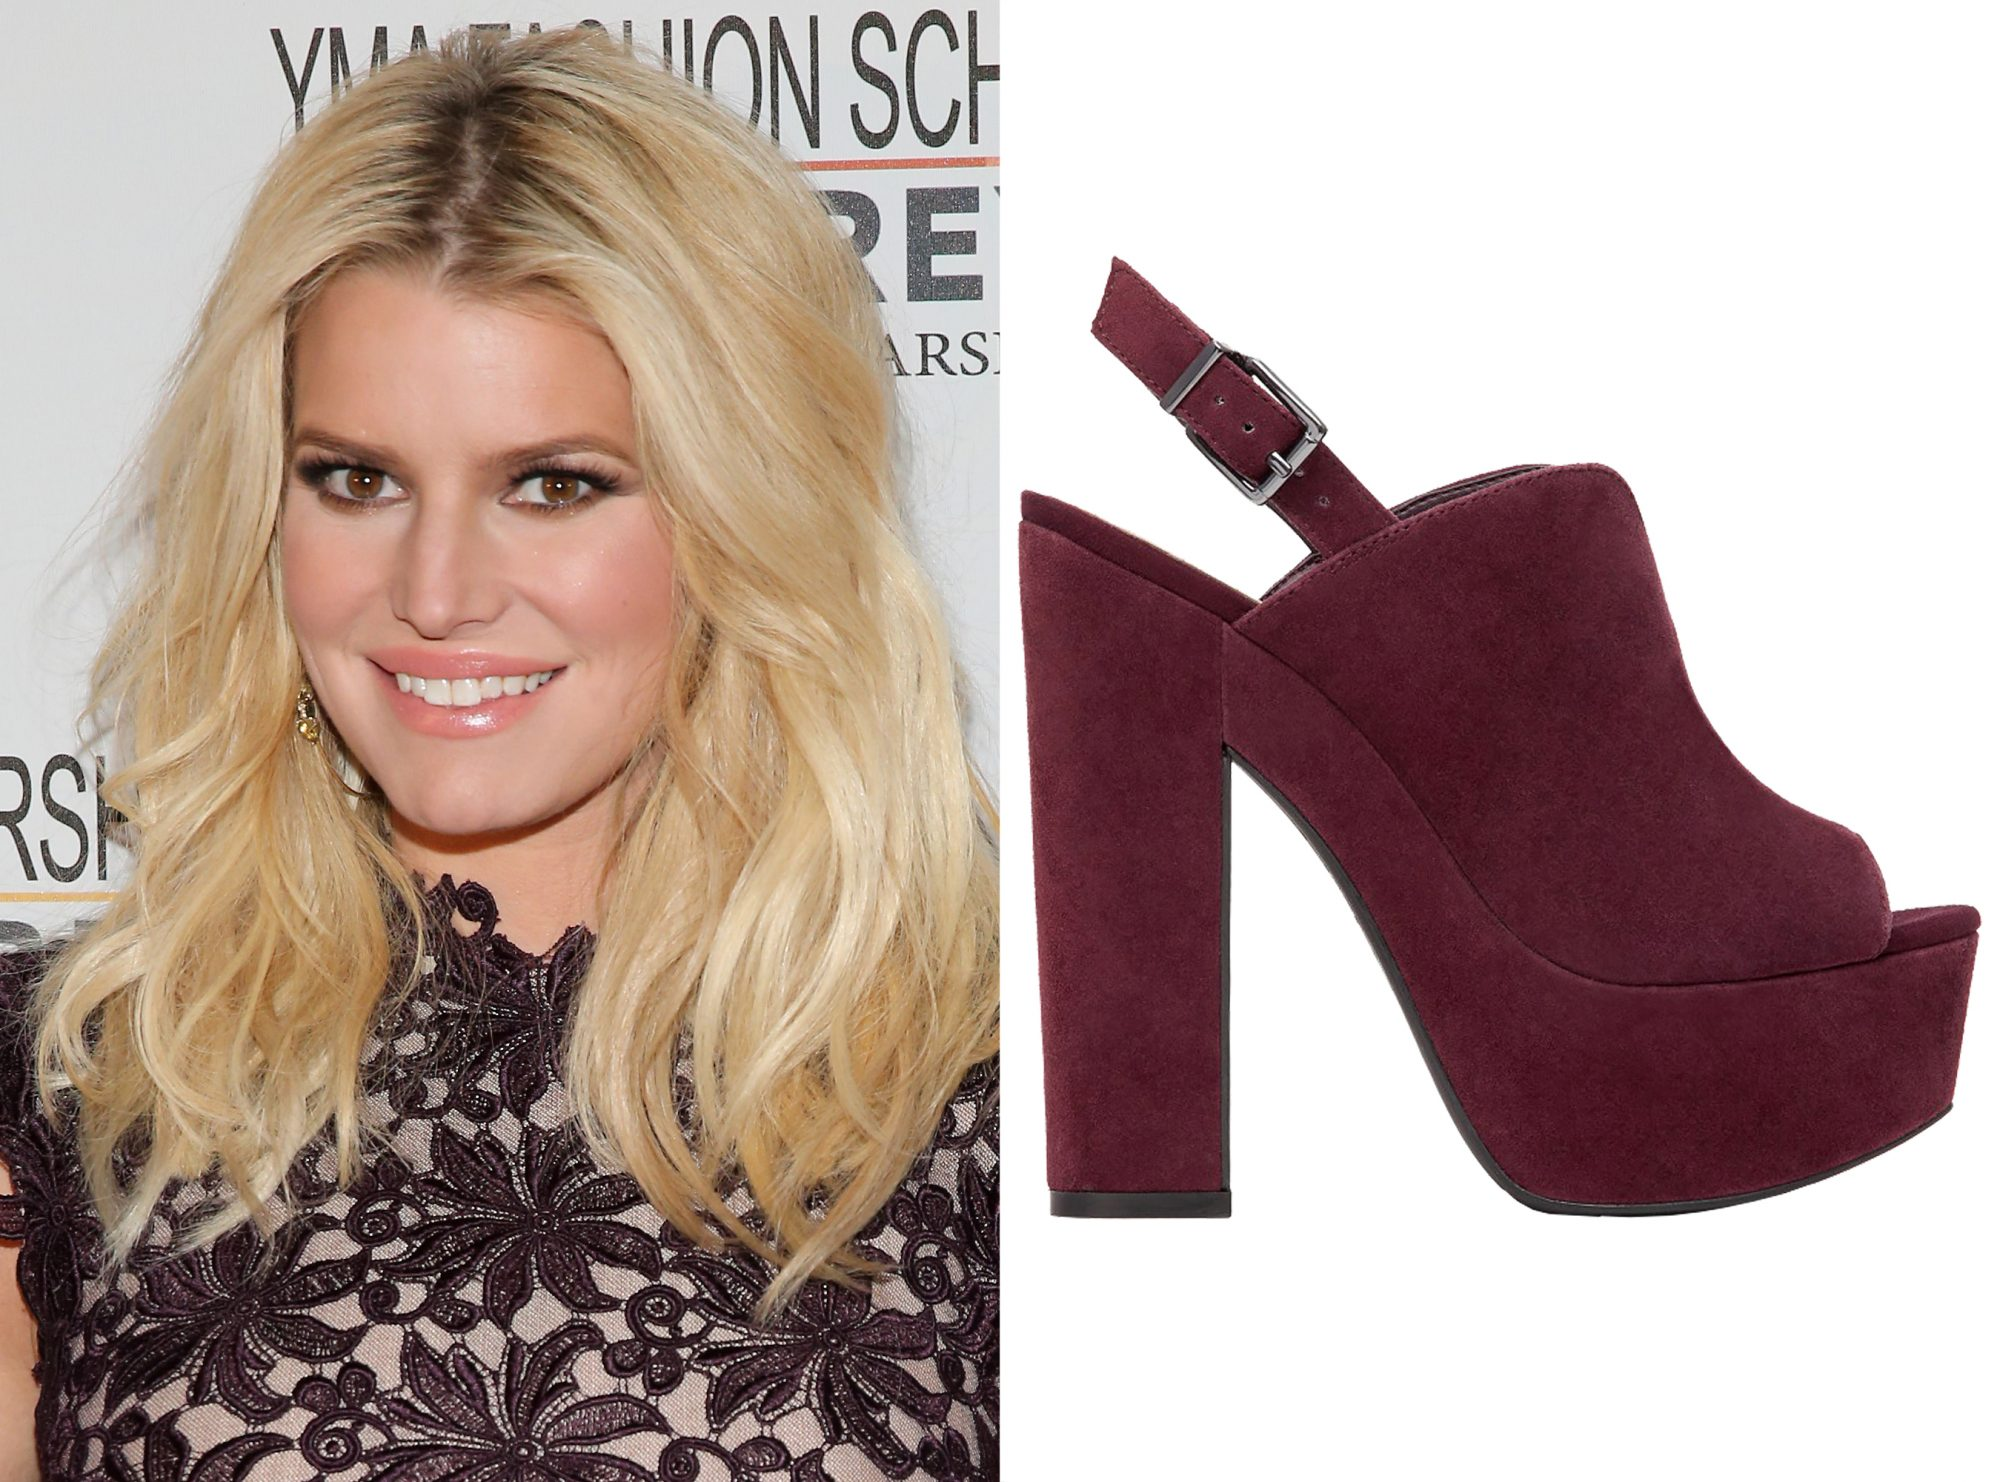 JESSICA SIMPSON and THE WARM UP: Jessica Simpson